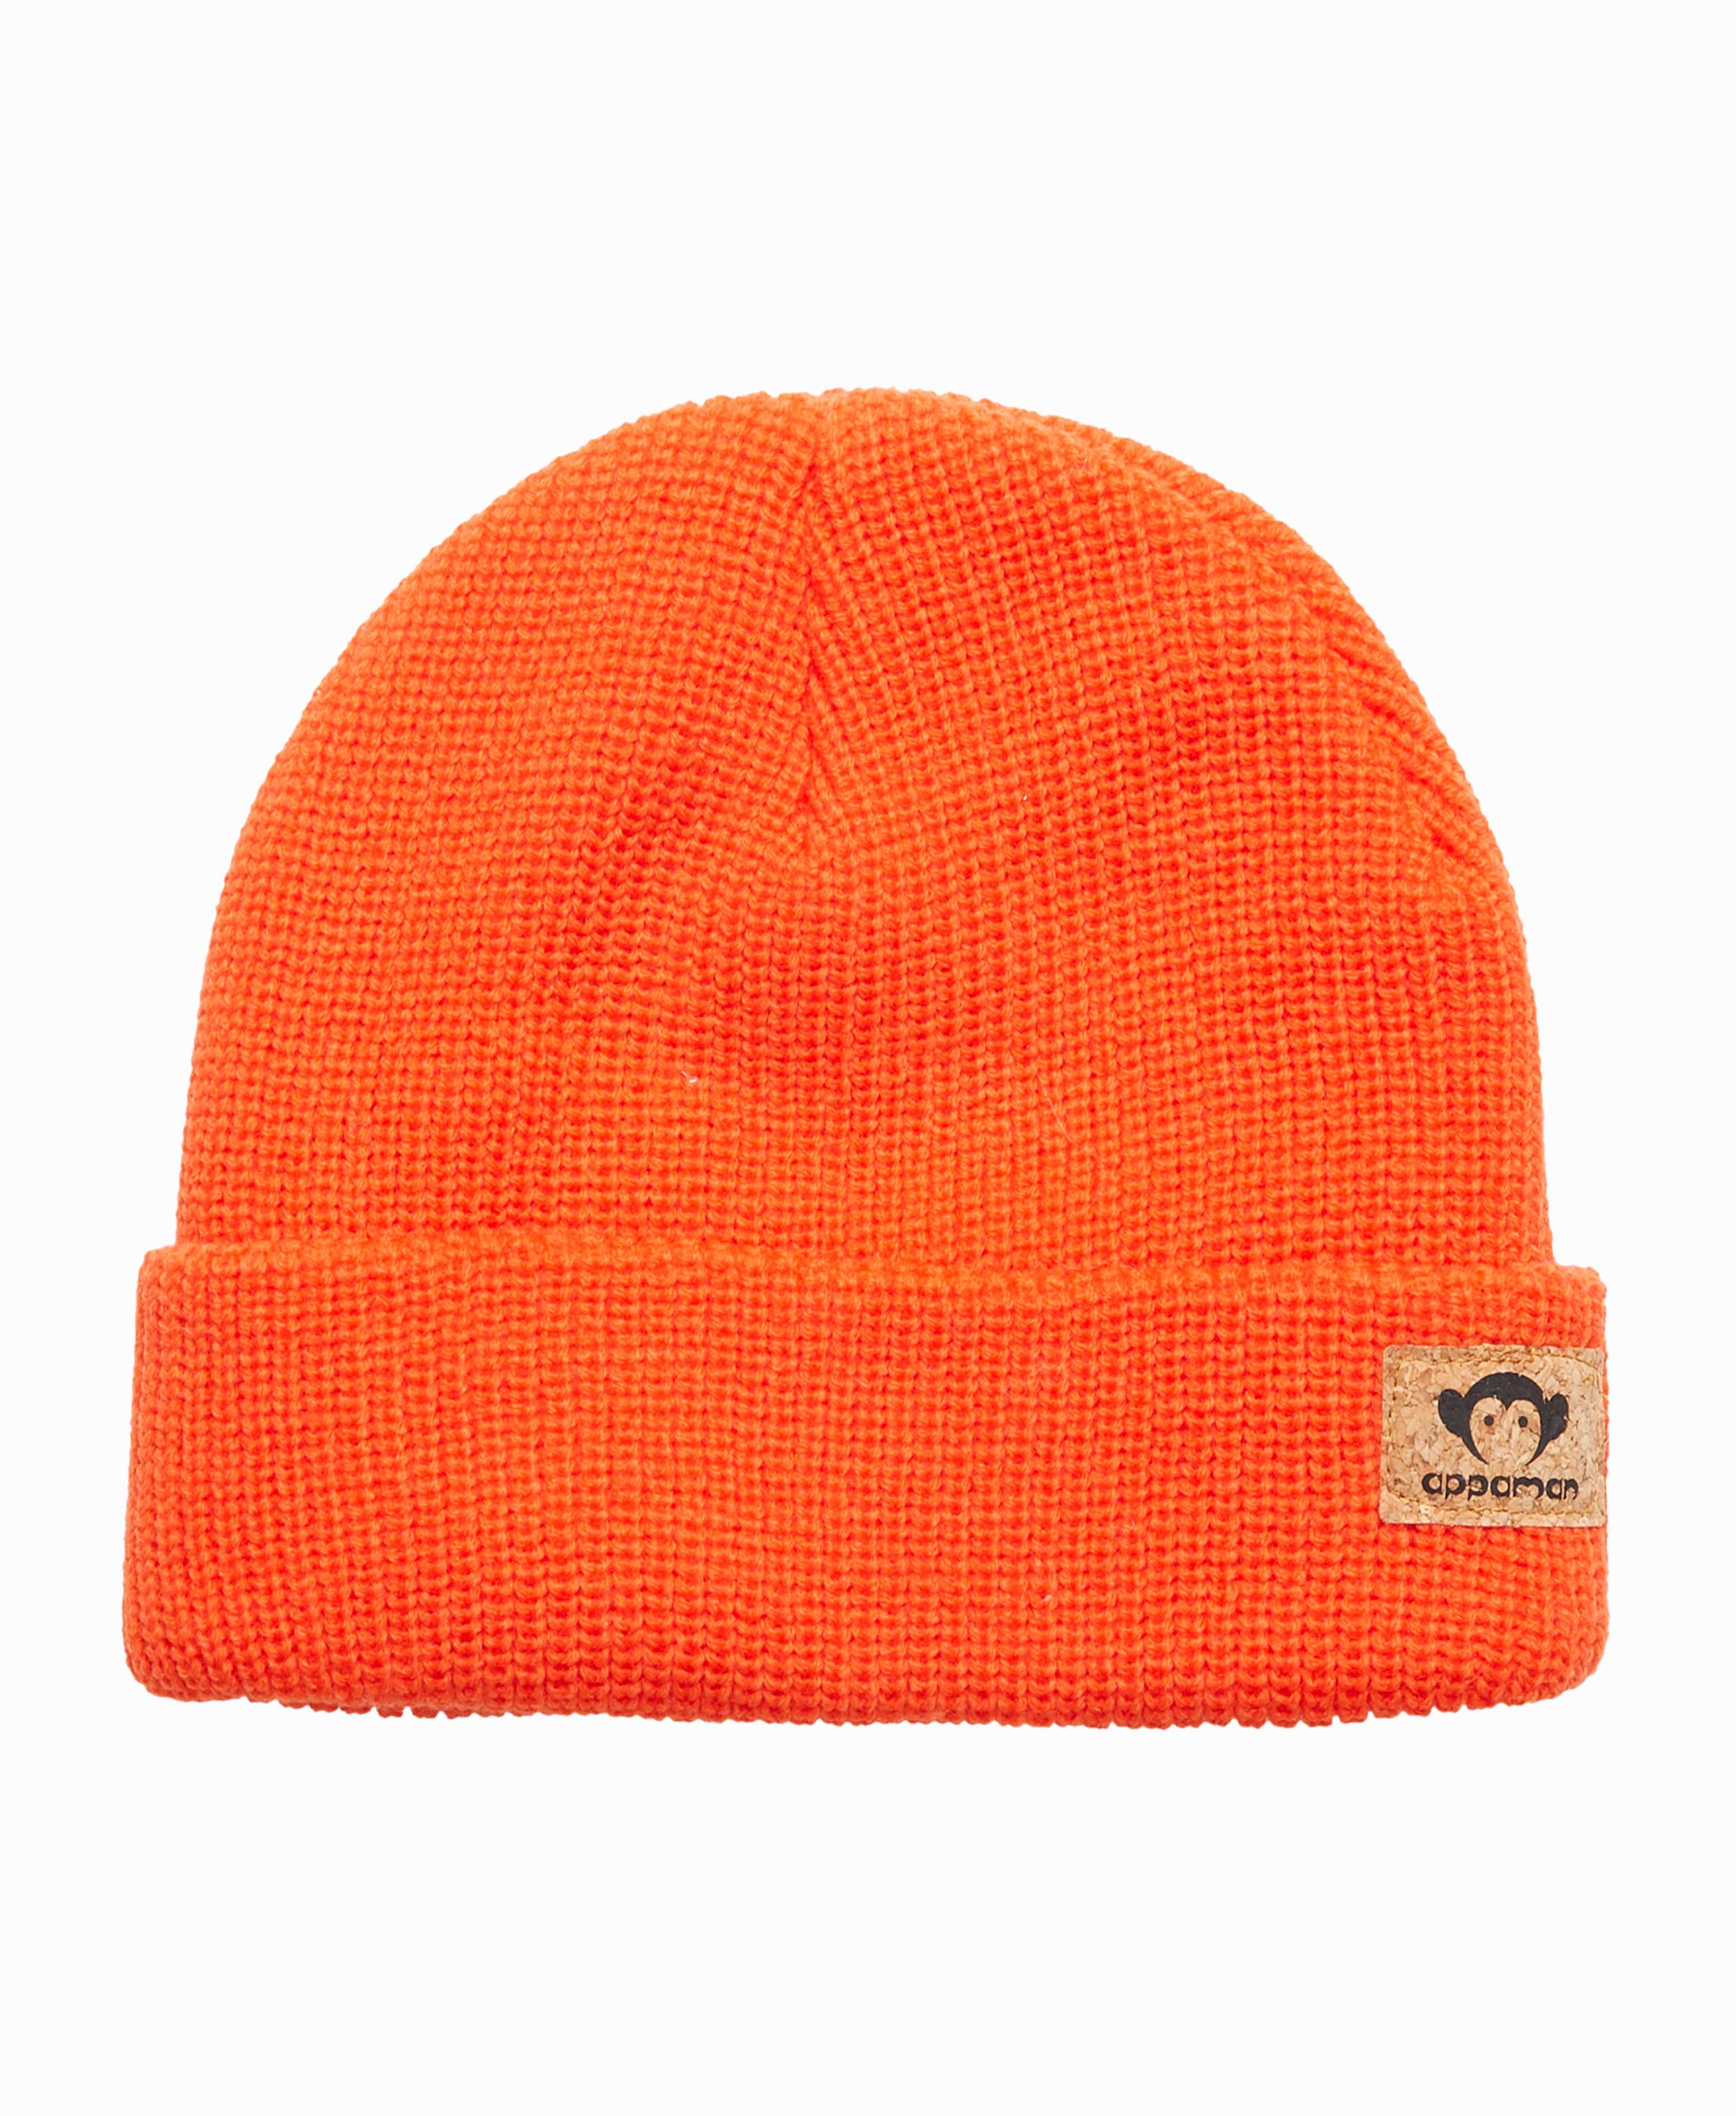 Haze Orange Knit Hat